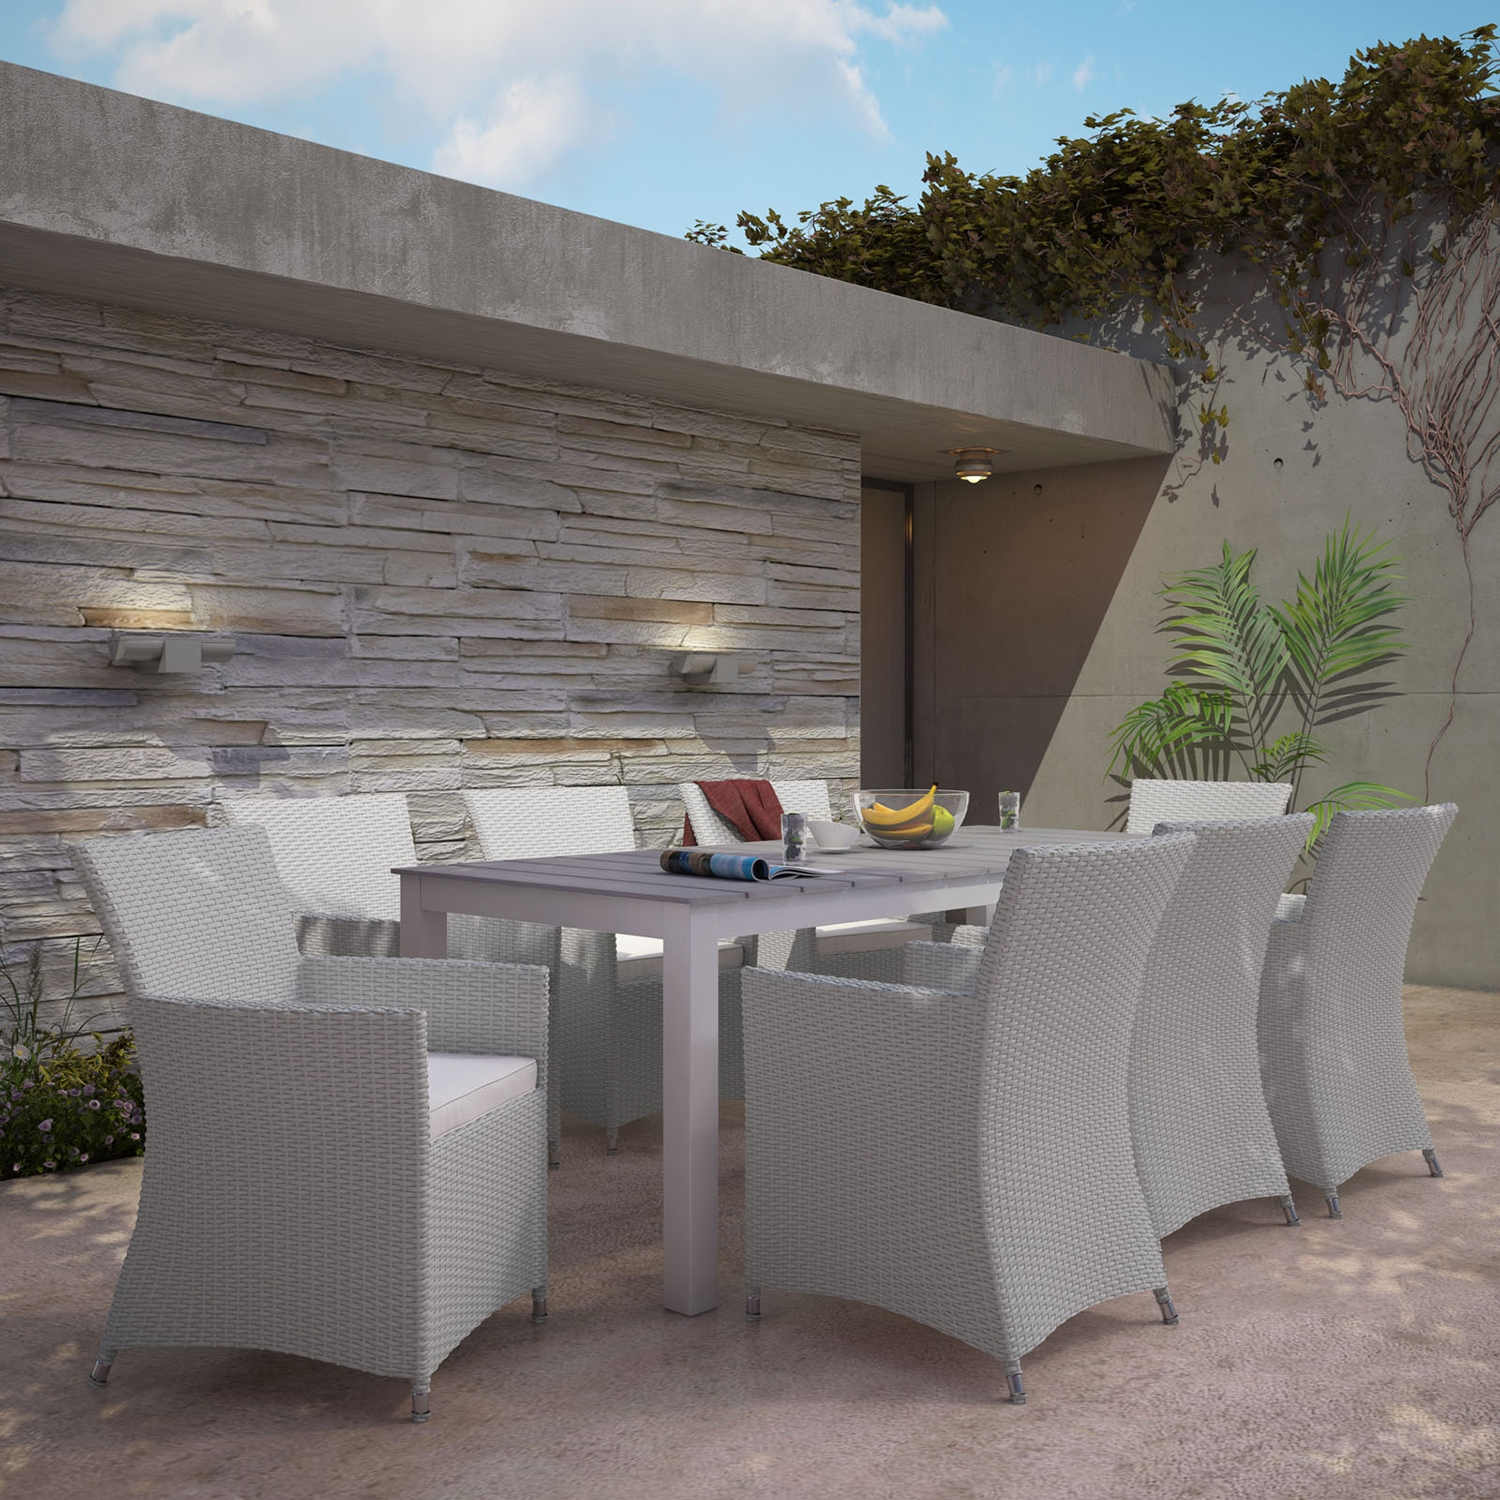 Junction 9 Pieces Outdoor Patio Set - Gray Frame, White Cushion - EEI-1752-GRY-WHI-SET